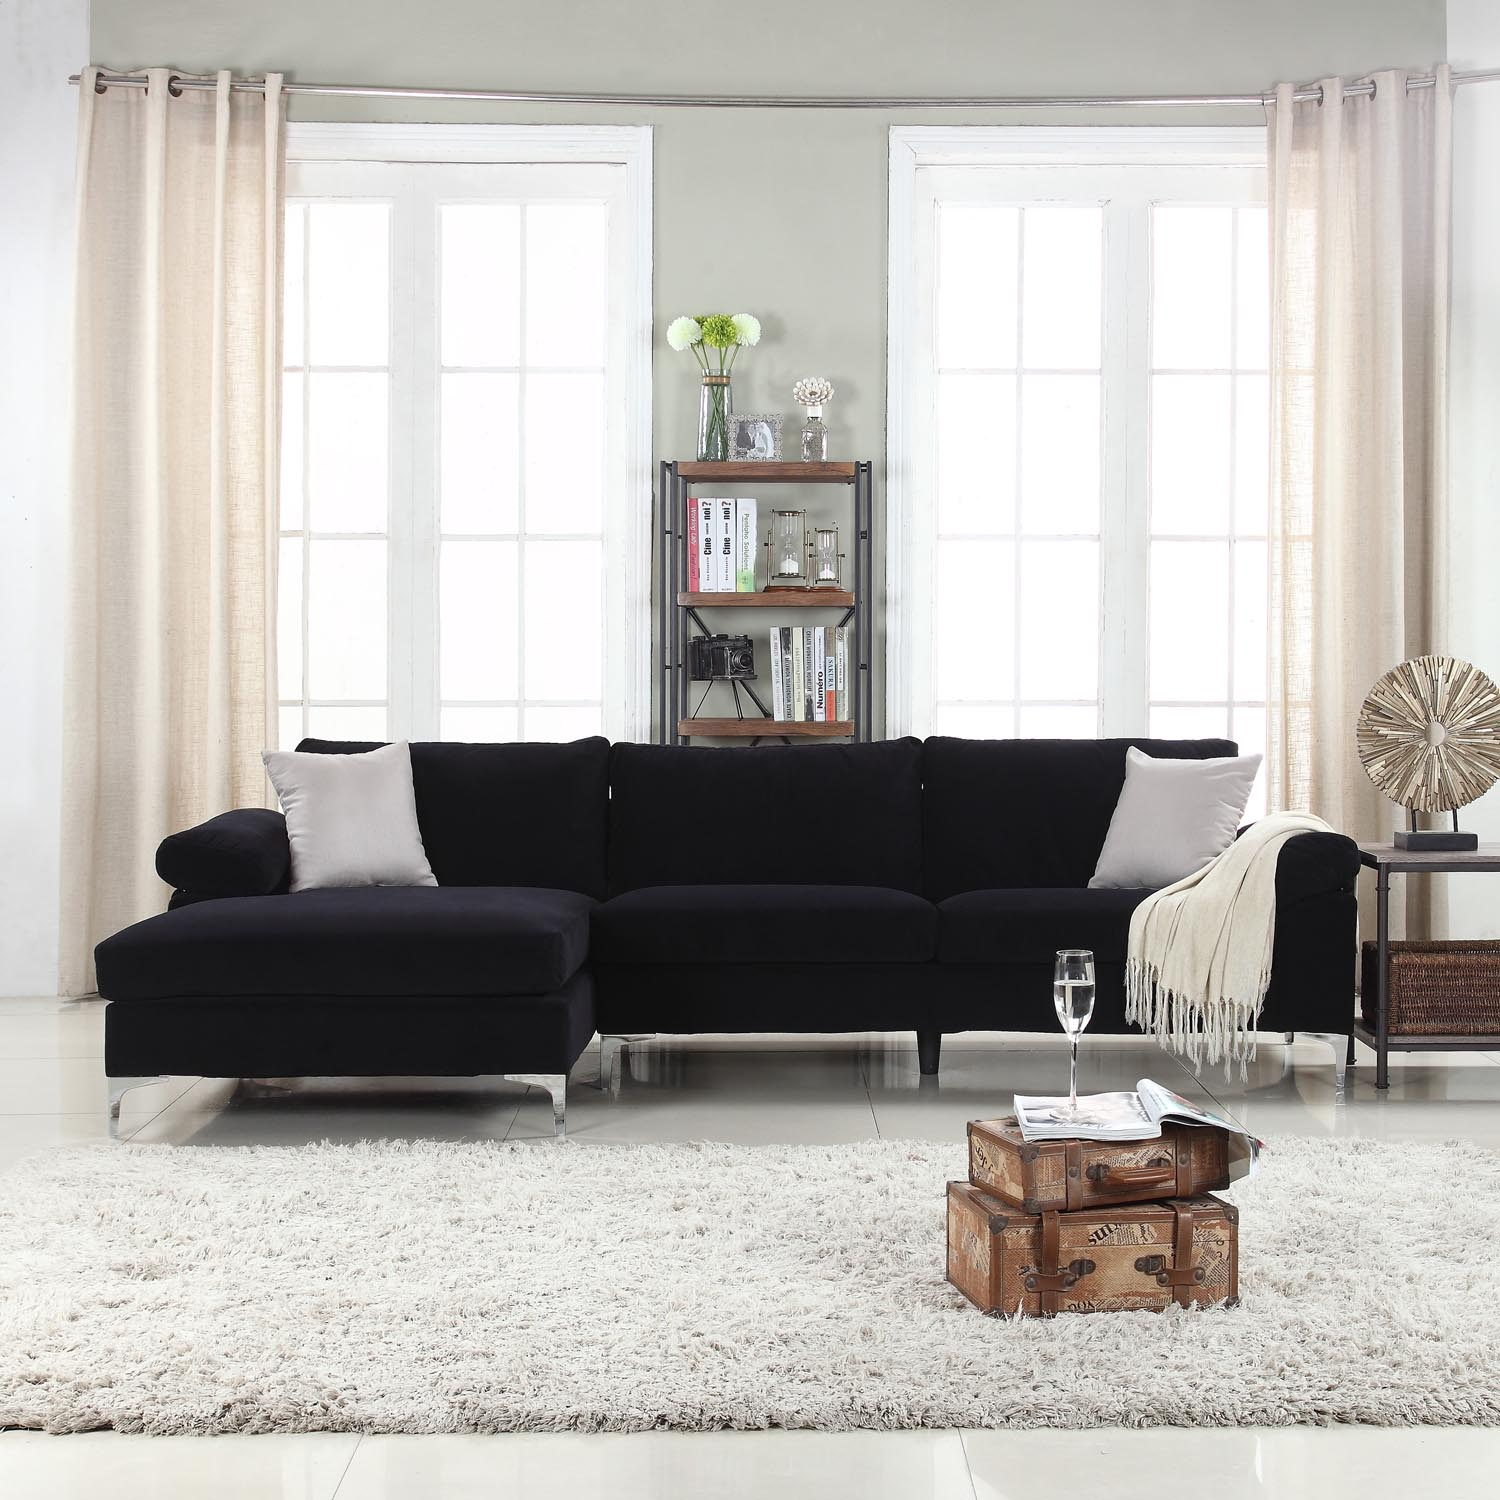 Modern Velvet Large Sectional Sofa, Oversized Sectional Sofas With Chaise